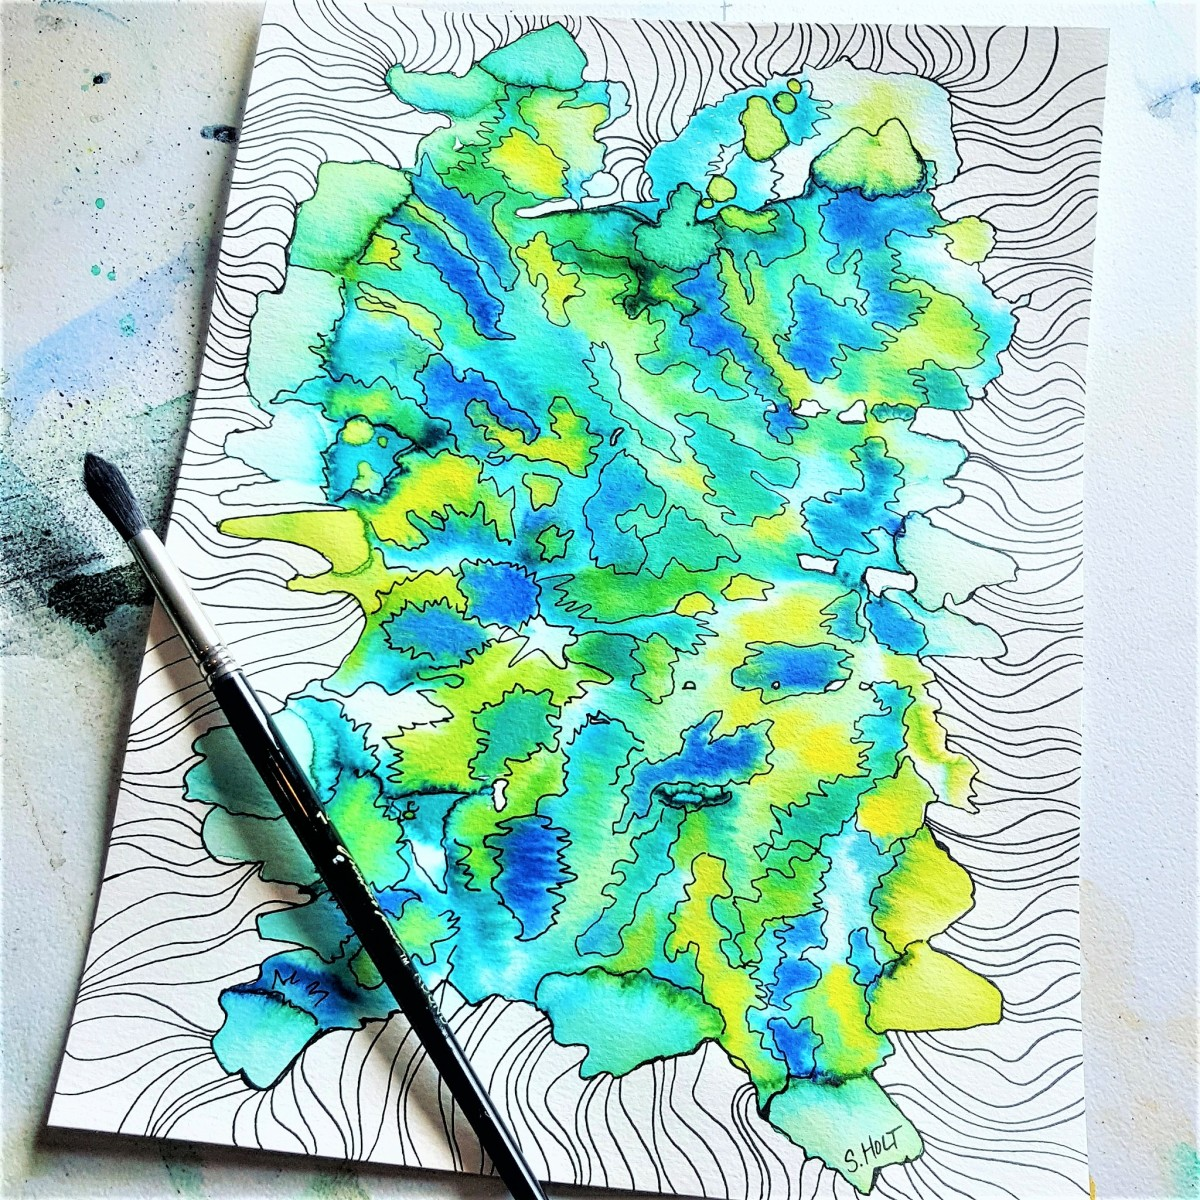 Abstract Watercolor created with leftover paint! Then I added the fun designs with my micron pen.